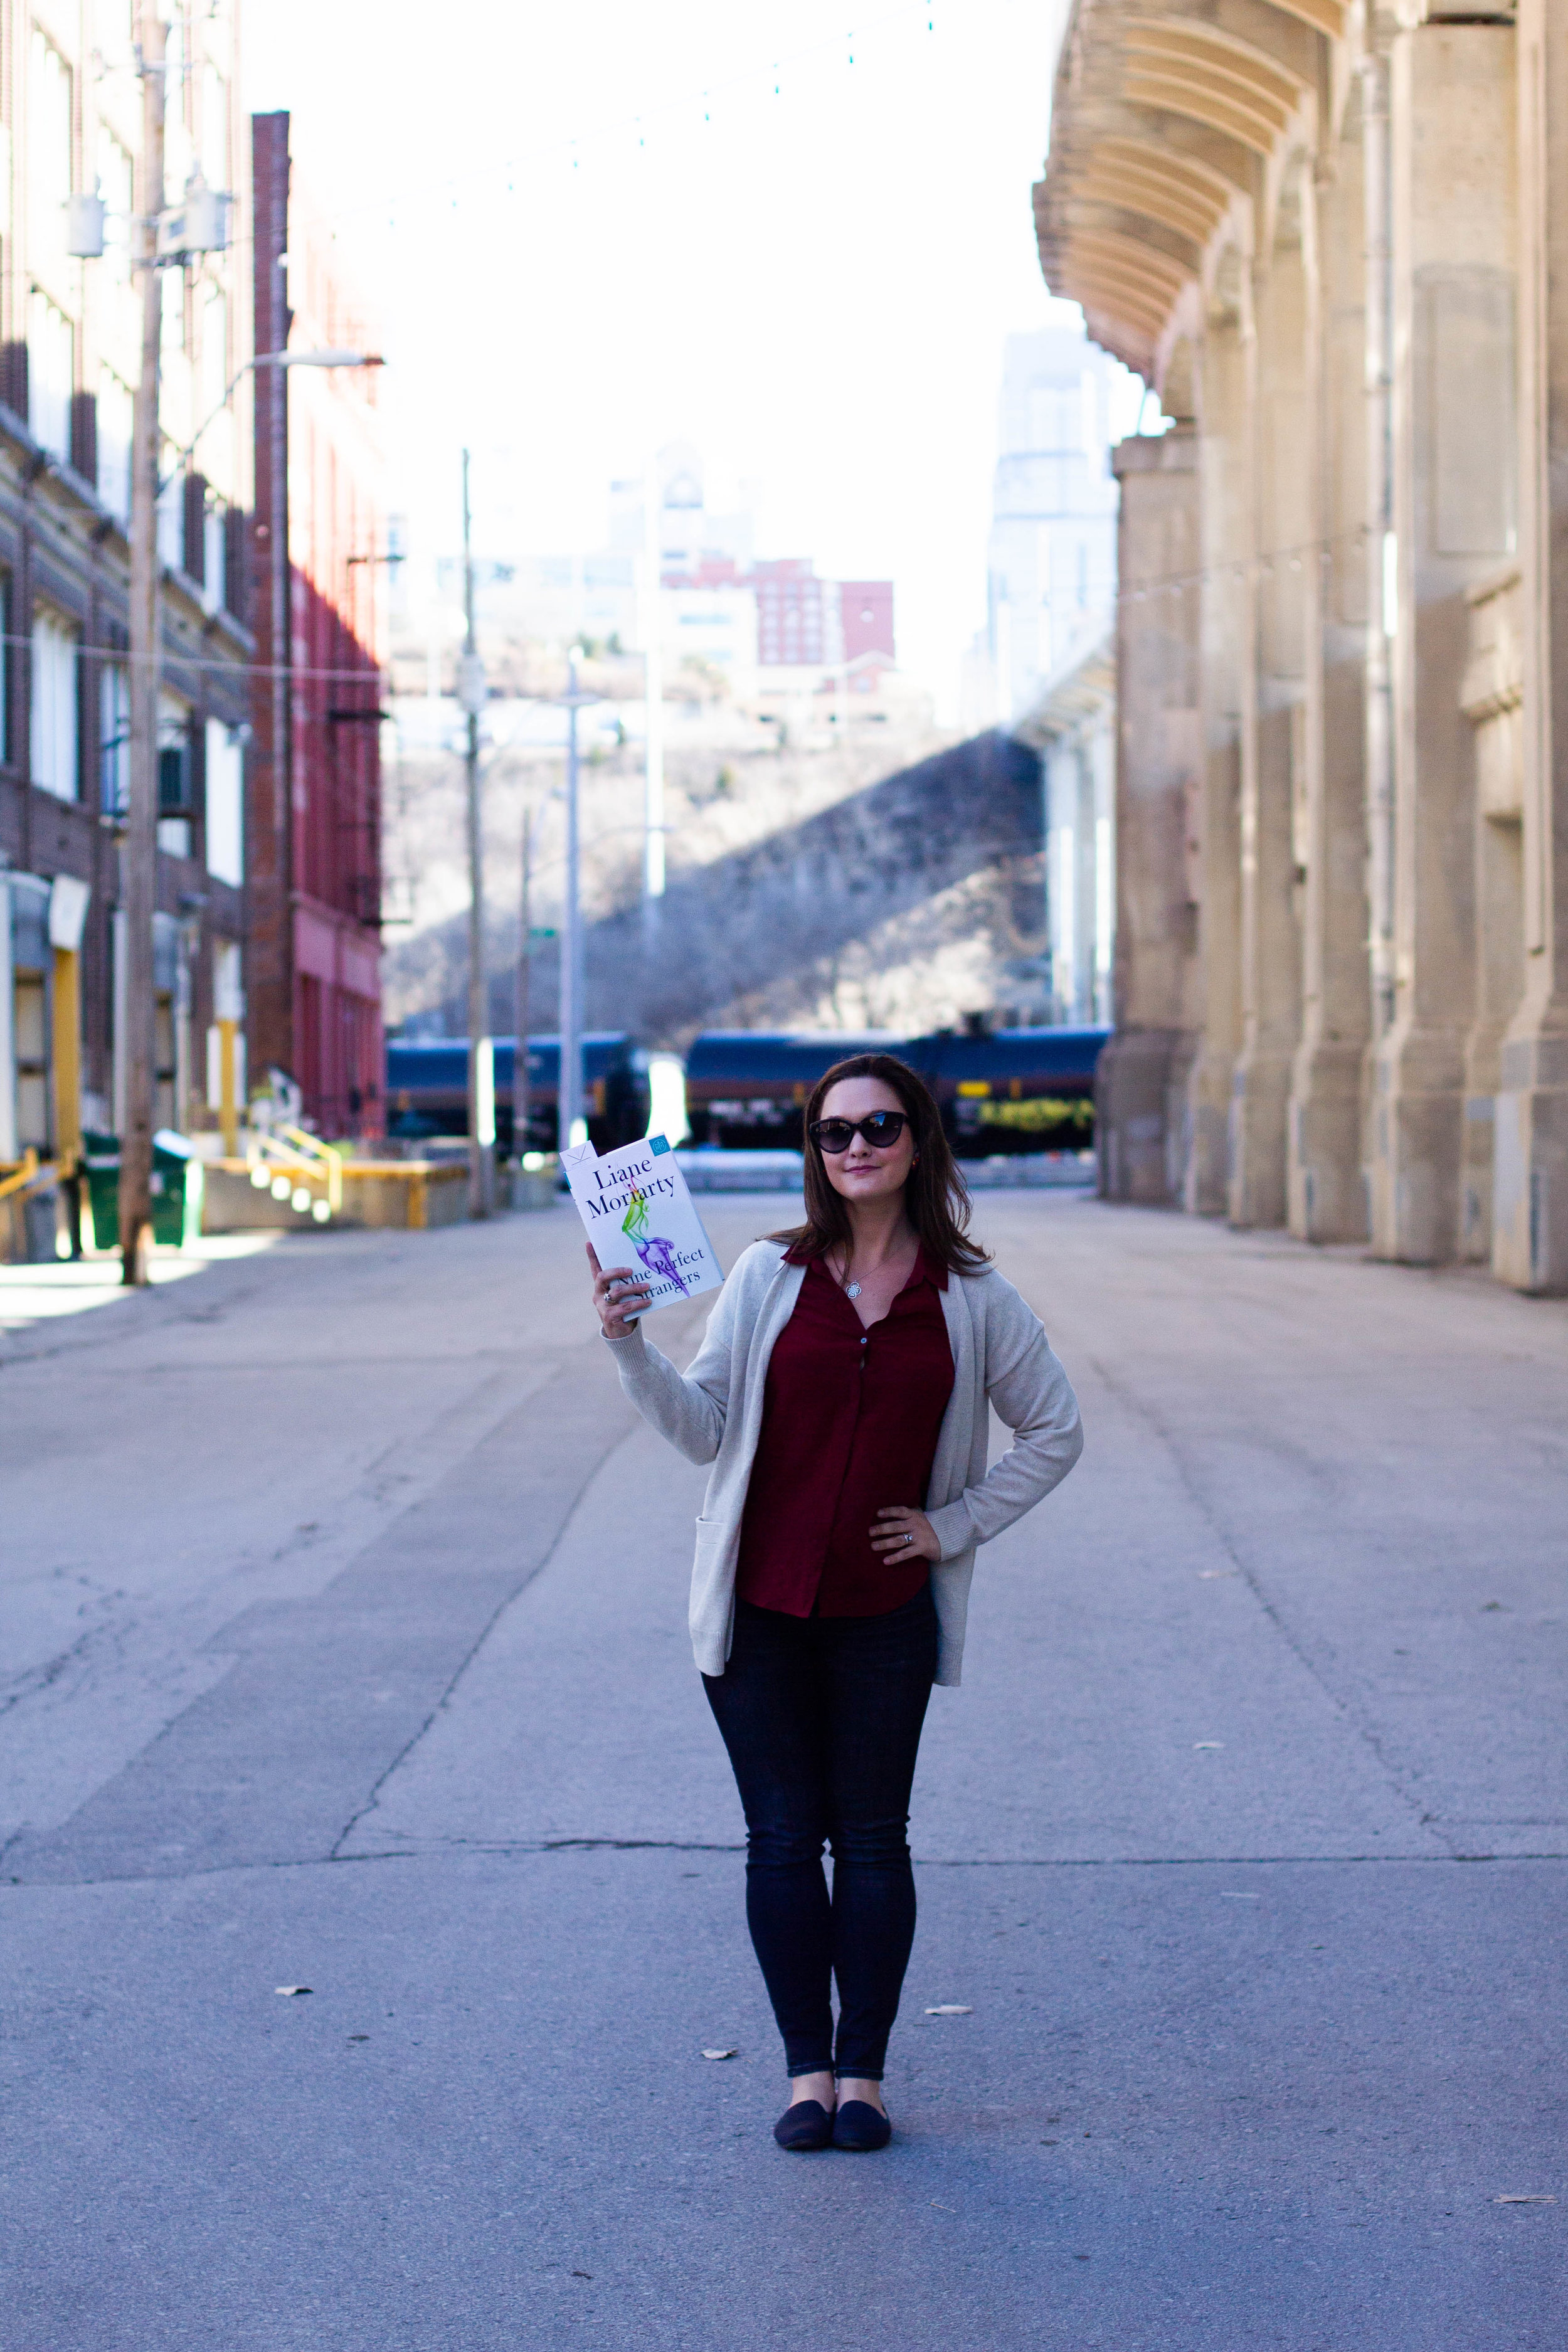 Reading Nine Perfect Strangers by Liane Moriarty in the Historic West Bottoms district of Kansas City, MO